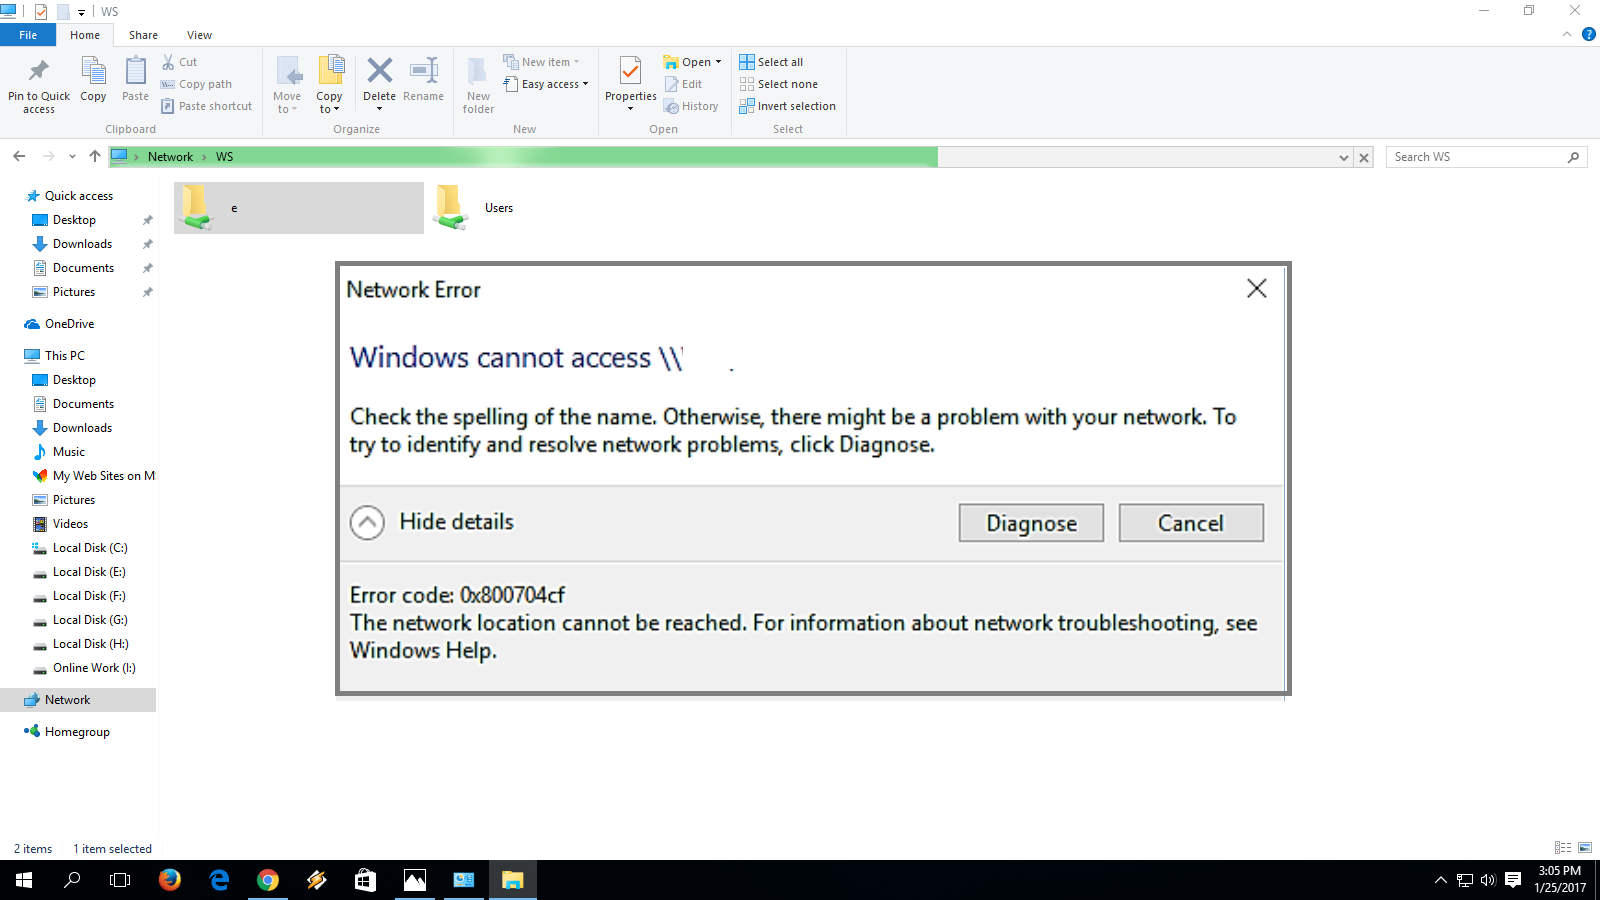 Learn New Things: How to Fix Network Error Windows Cannot